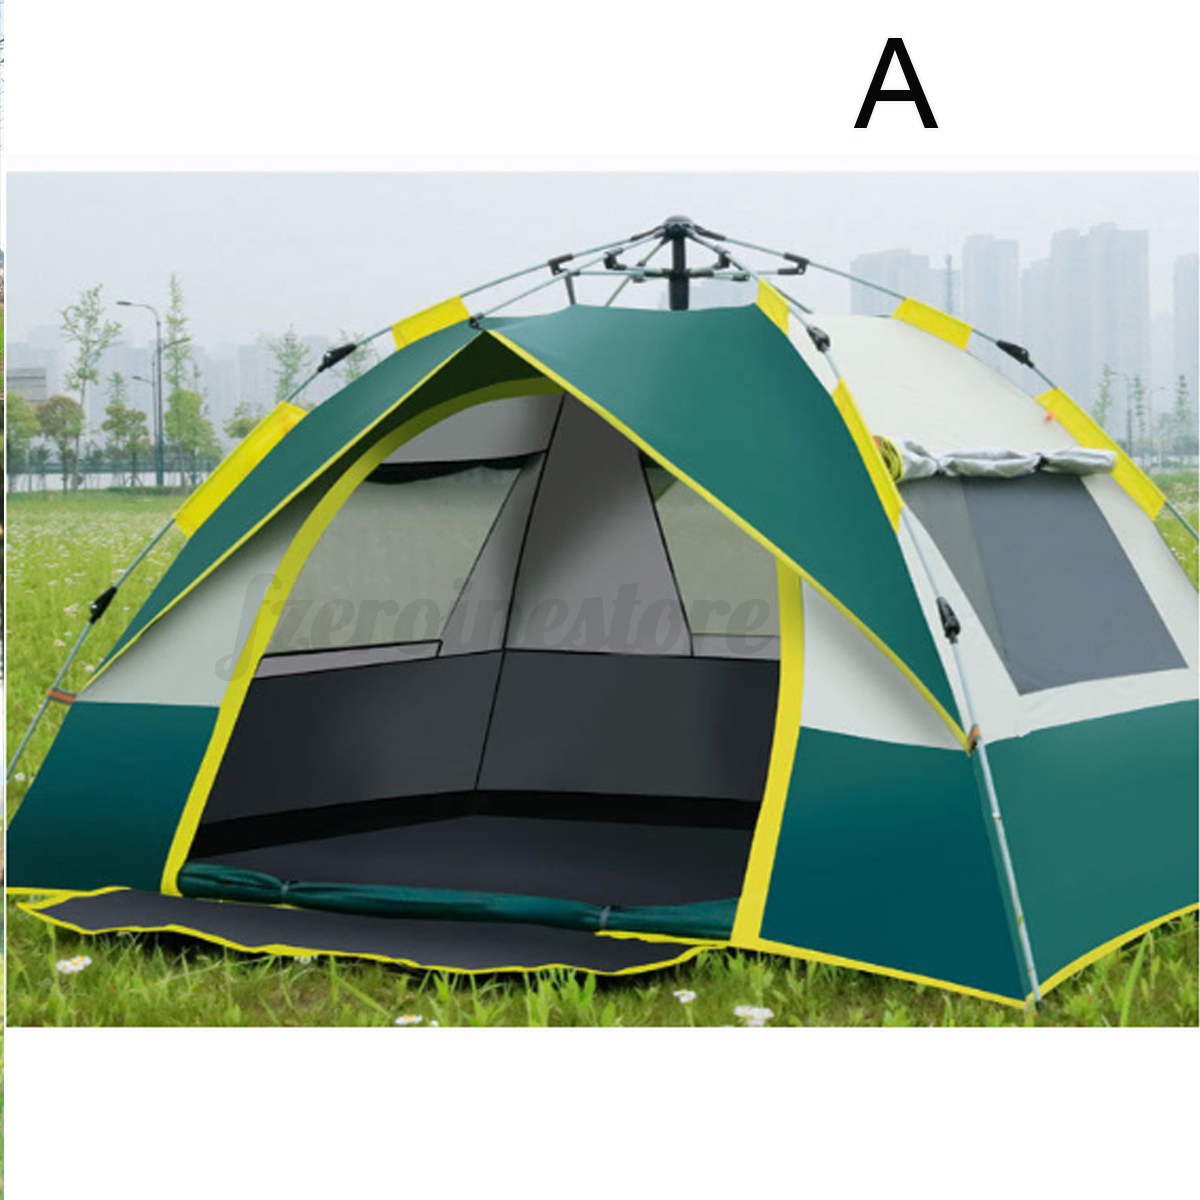 Automatic-3-4-Man-Person-Family-Tent-Camping-Anti-UV-Waterproof-Shelter-Hiking thumbnail 3